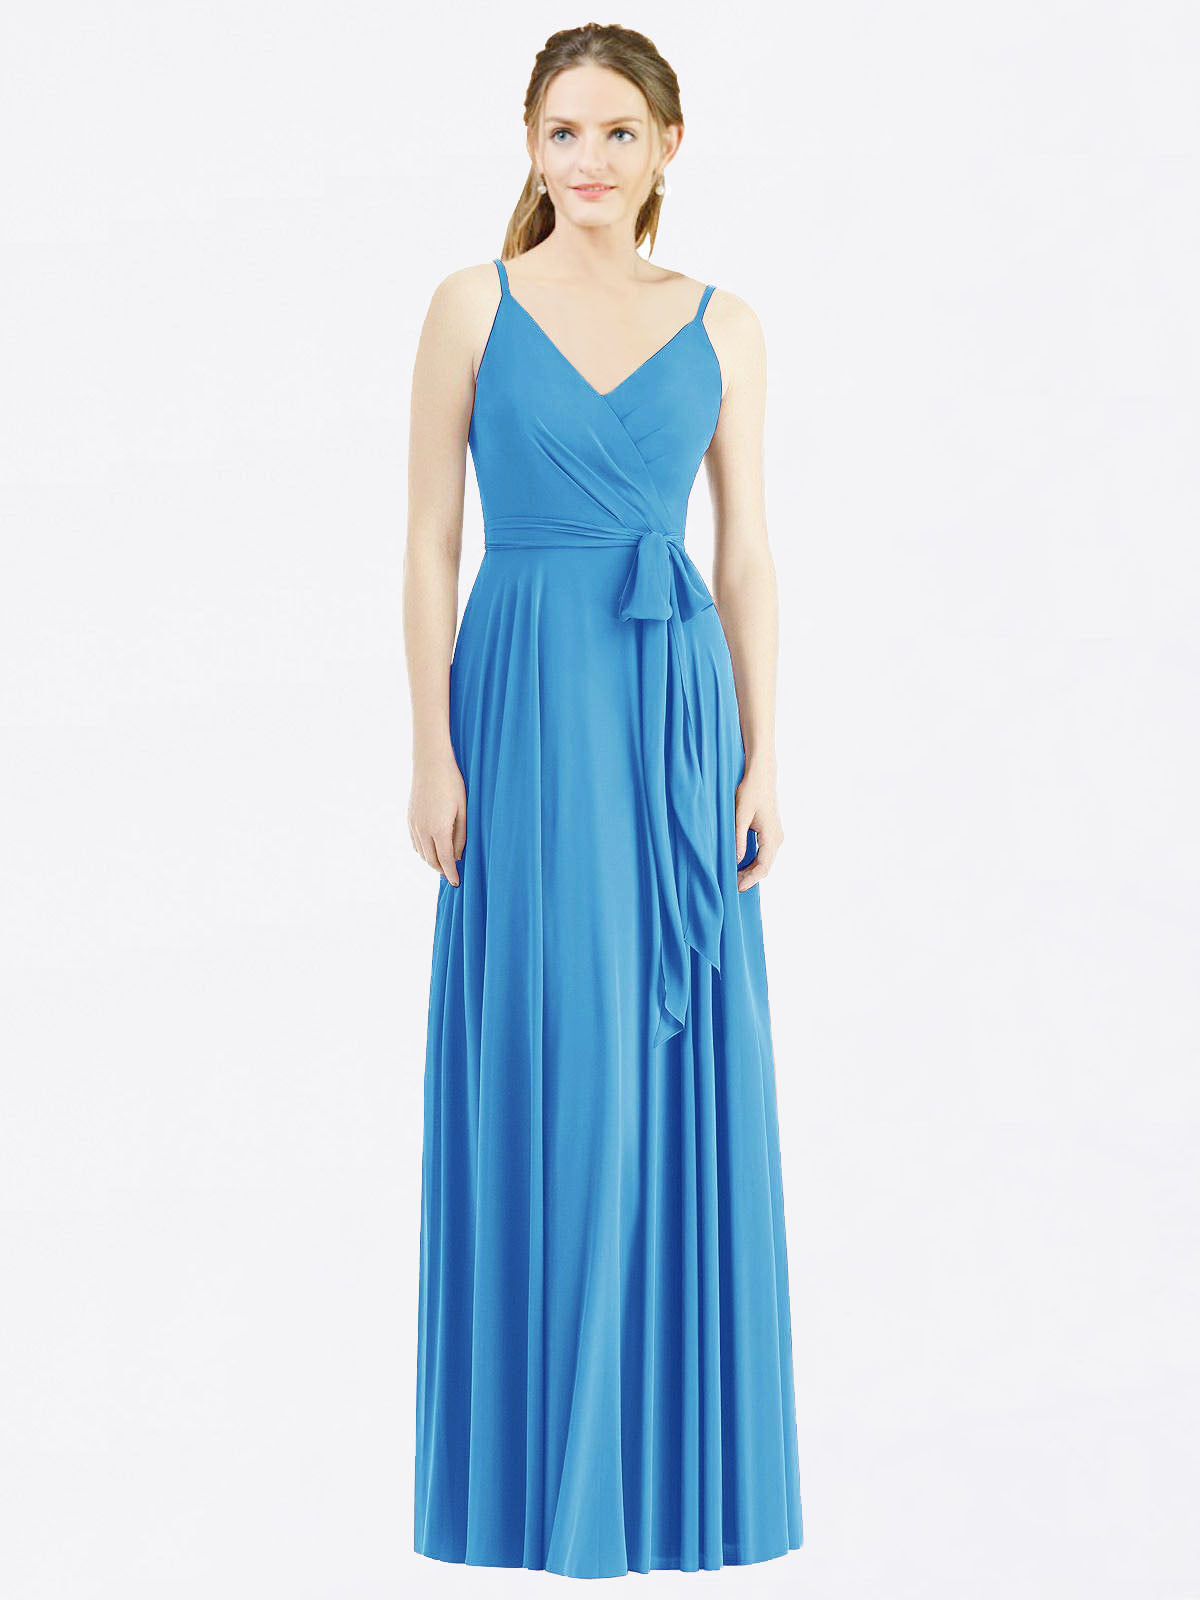 Long A-Line Spaghetti Straps, V-Neck Sleeveless Peacock Blue Chiffon Bridesmaid Dress Madilyn